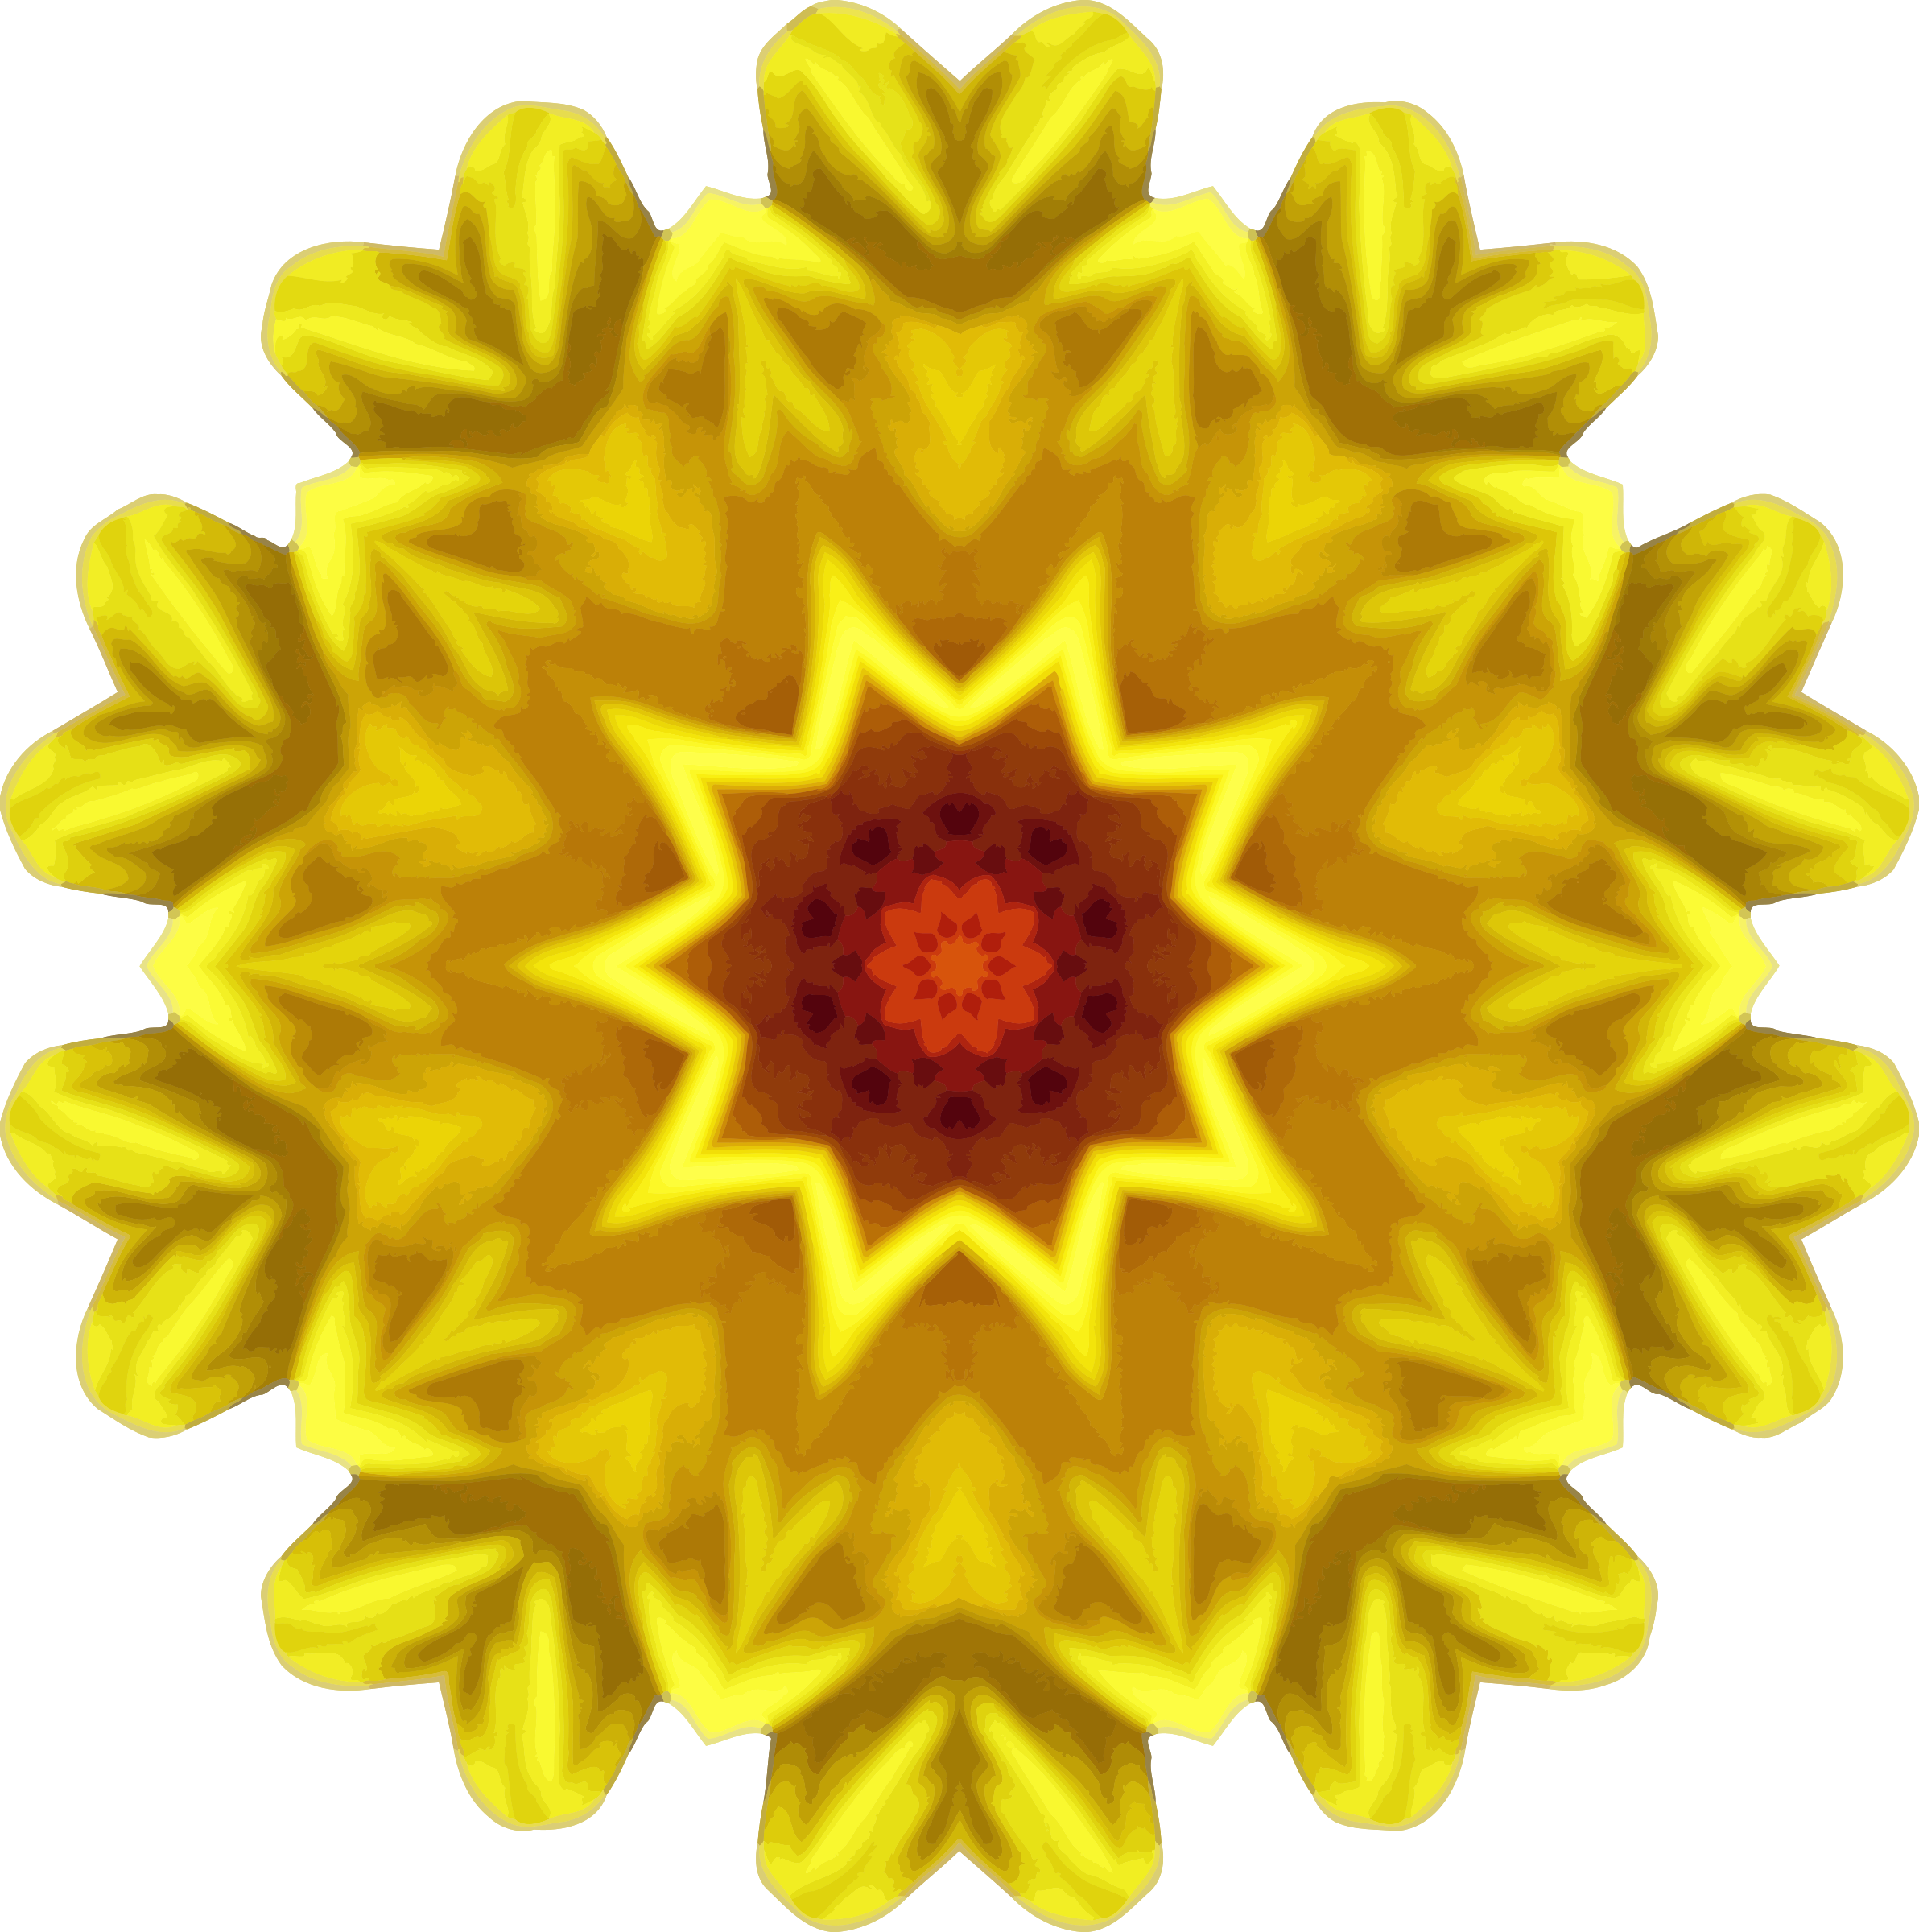 Sunflower kaleidoscope 16 by Firkin